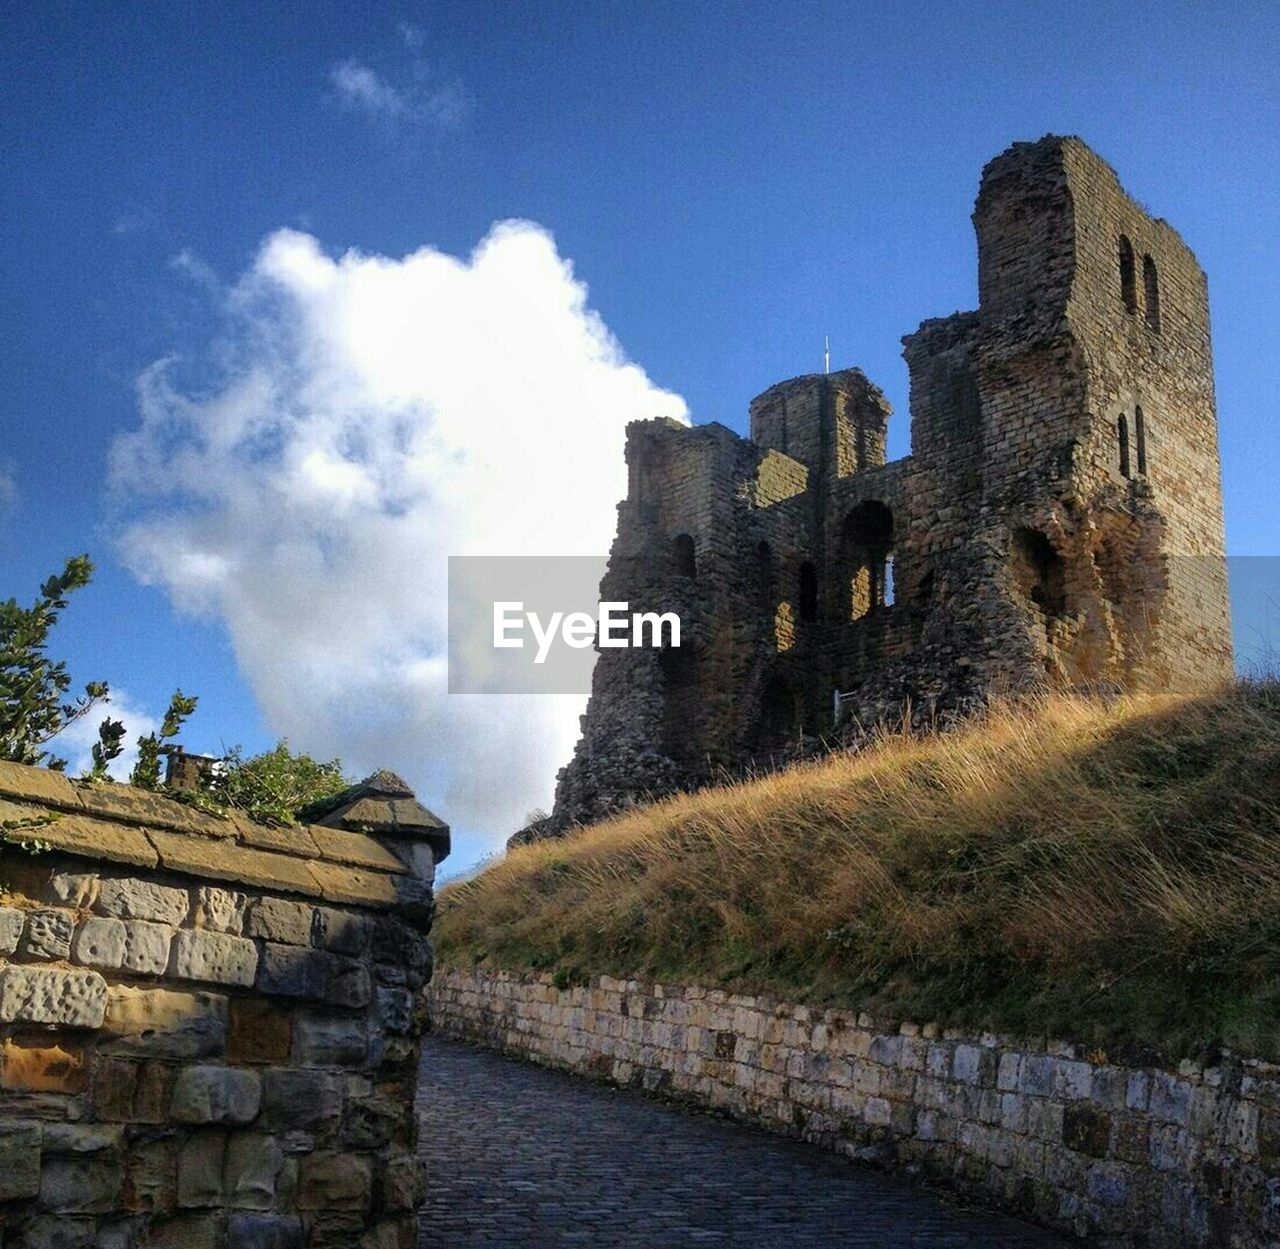 architecture, history, built structure, castle, old ruin, the past, building exterior, ancient, day, fort, outdoors, sky, ancient civilization, travel destinations, no people, water, nature